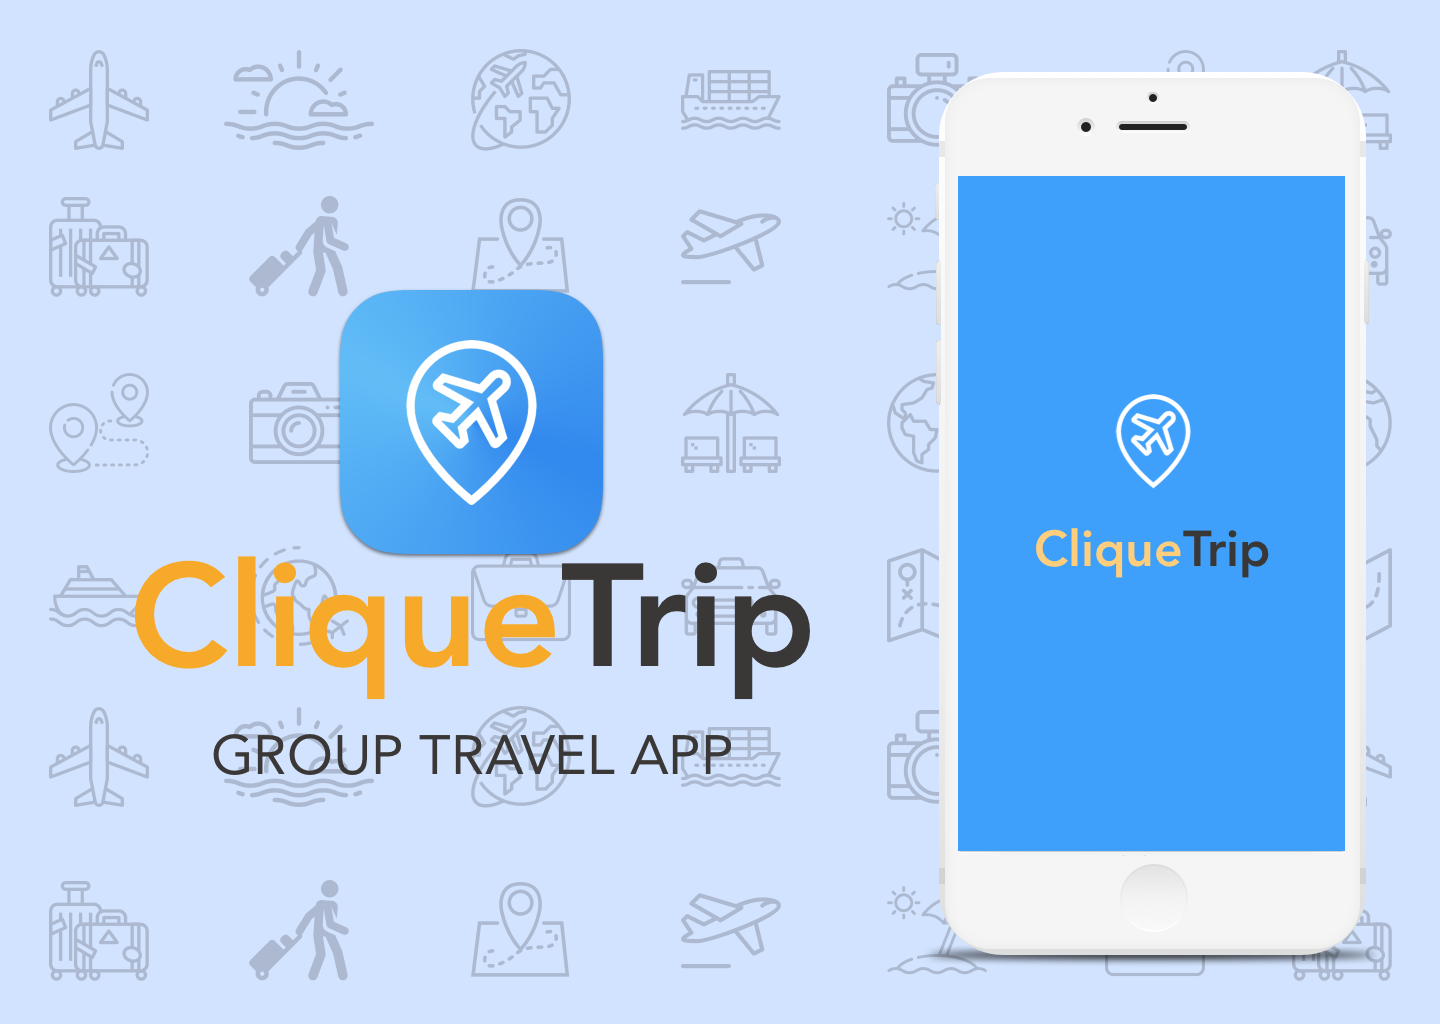 Clique Trip - Designed a mobile application for group travelers to plan and manage their itinerary and payments for expenses in one place to create a more enjoyable experience.Learn more ➝